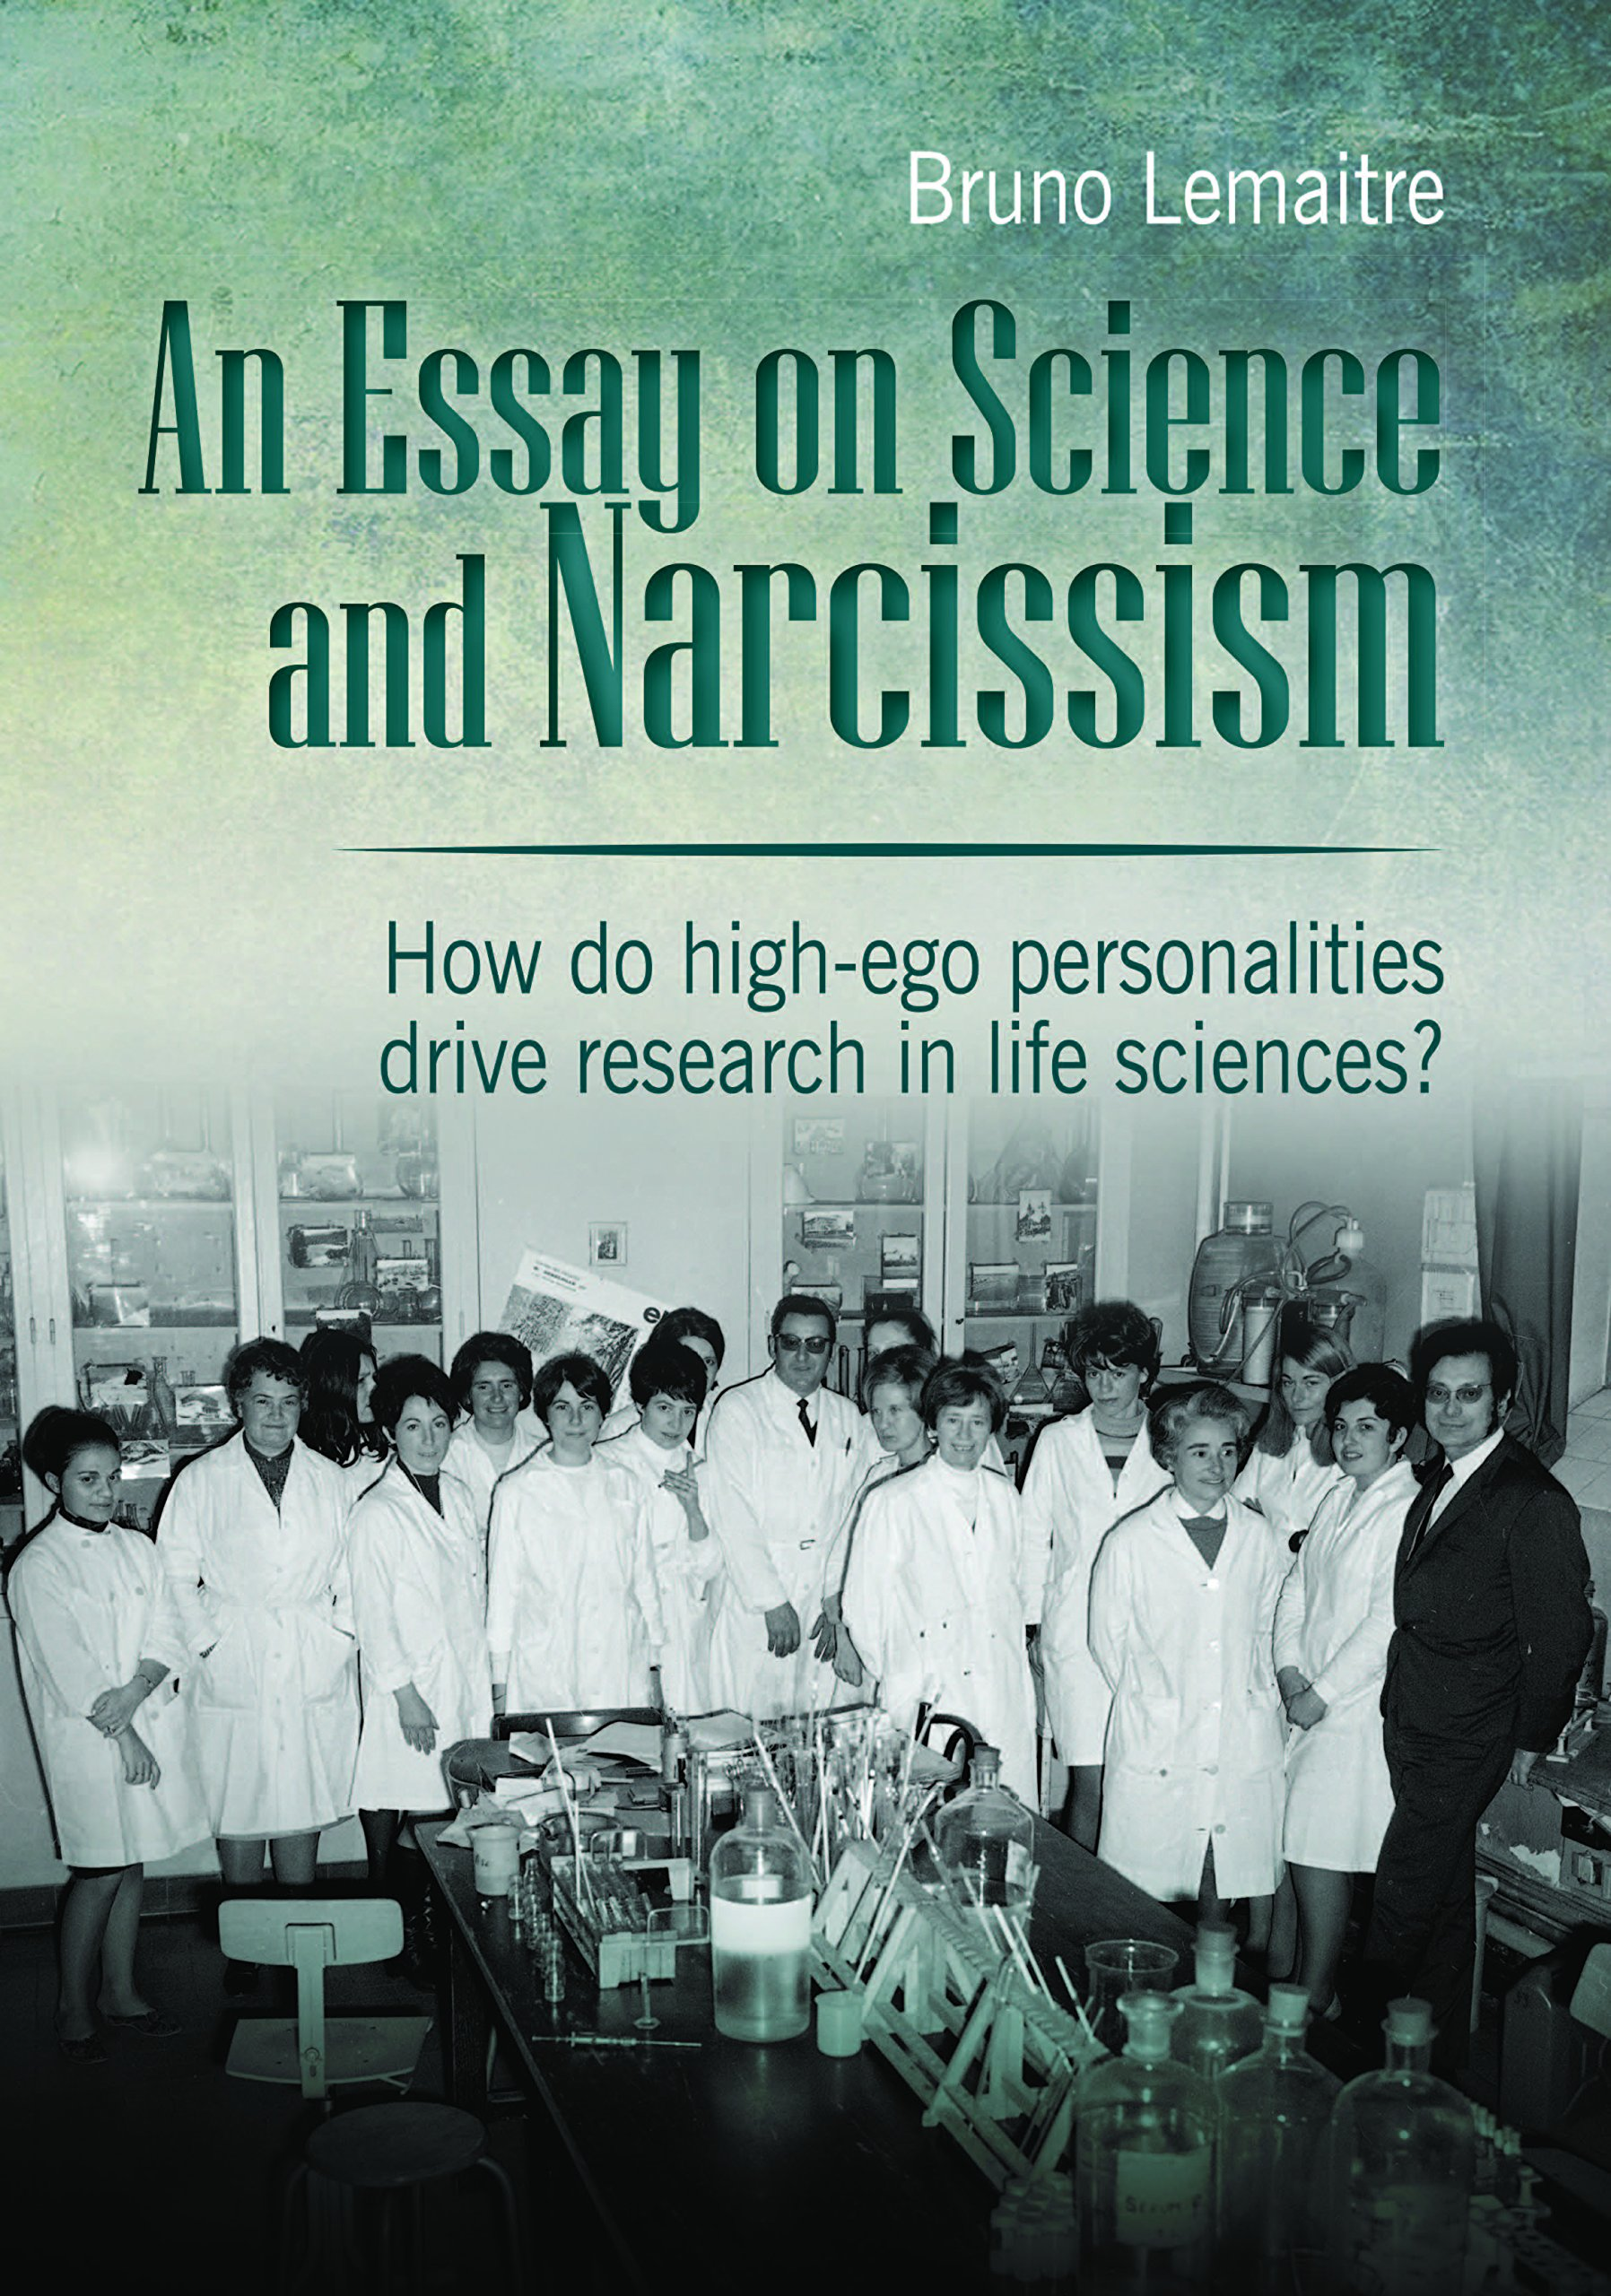 an essay on science and narcissism how do high ego